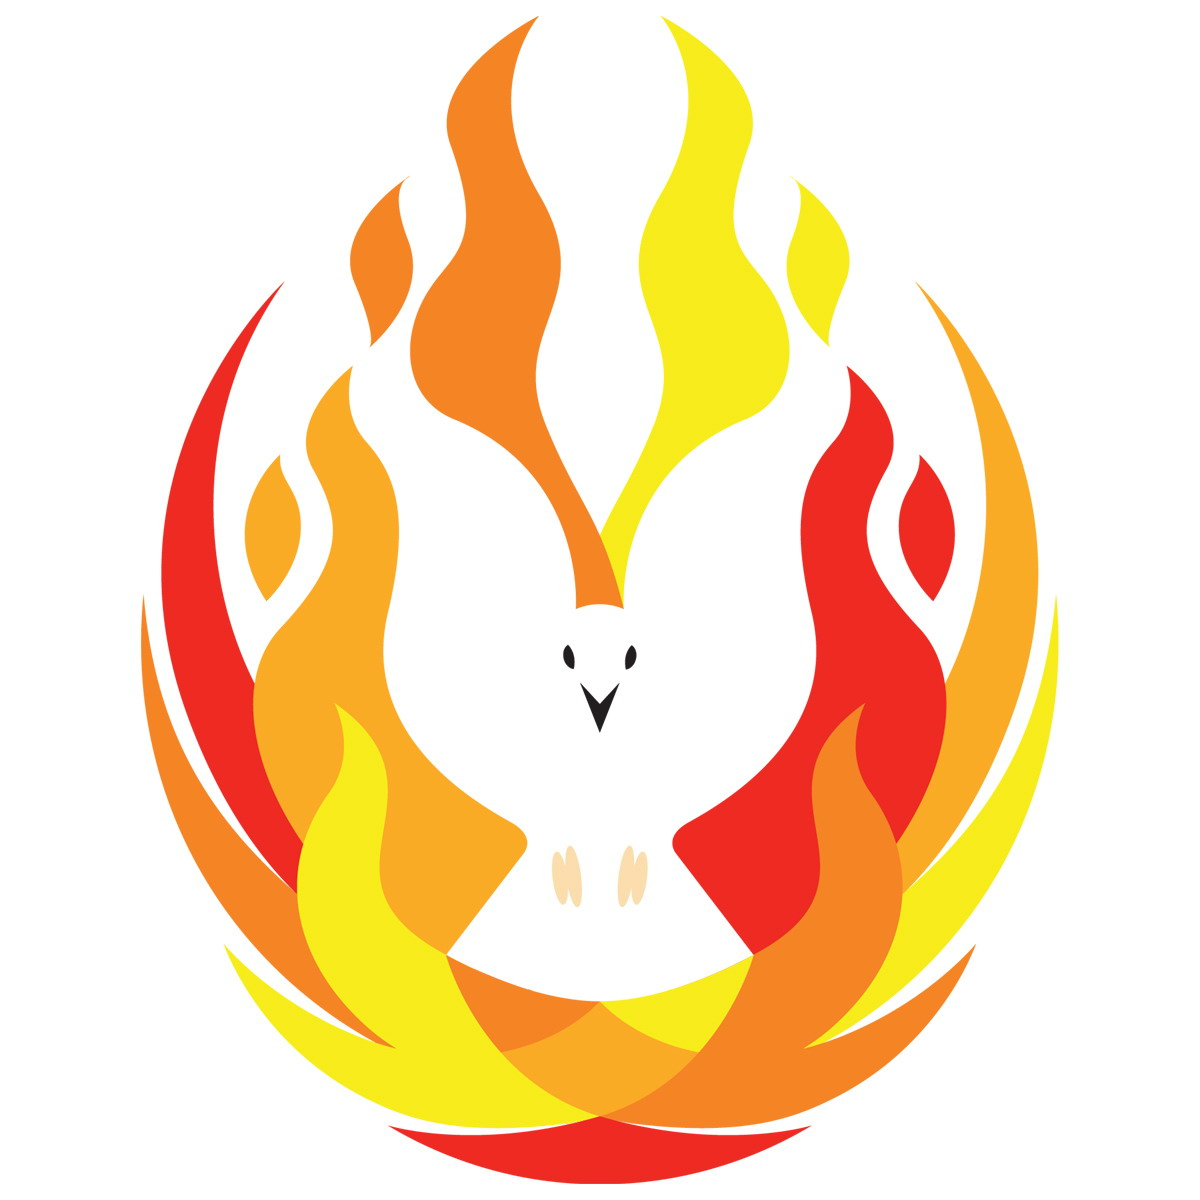 1000+ images about Pentecost 2015 on Pinterest.